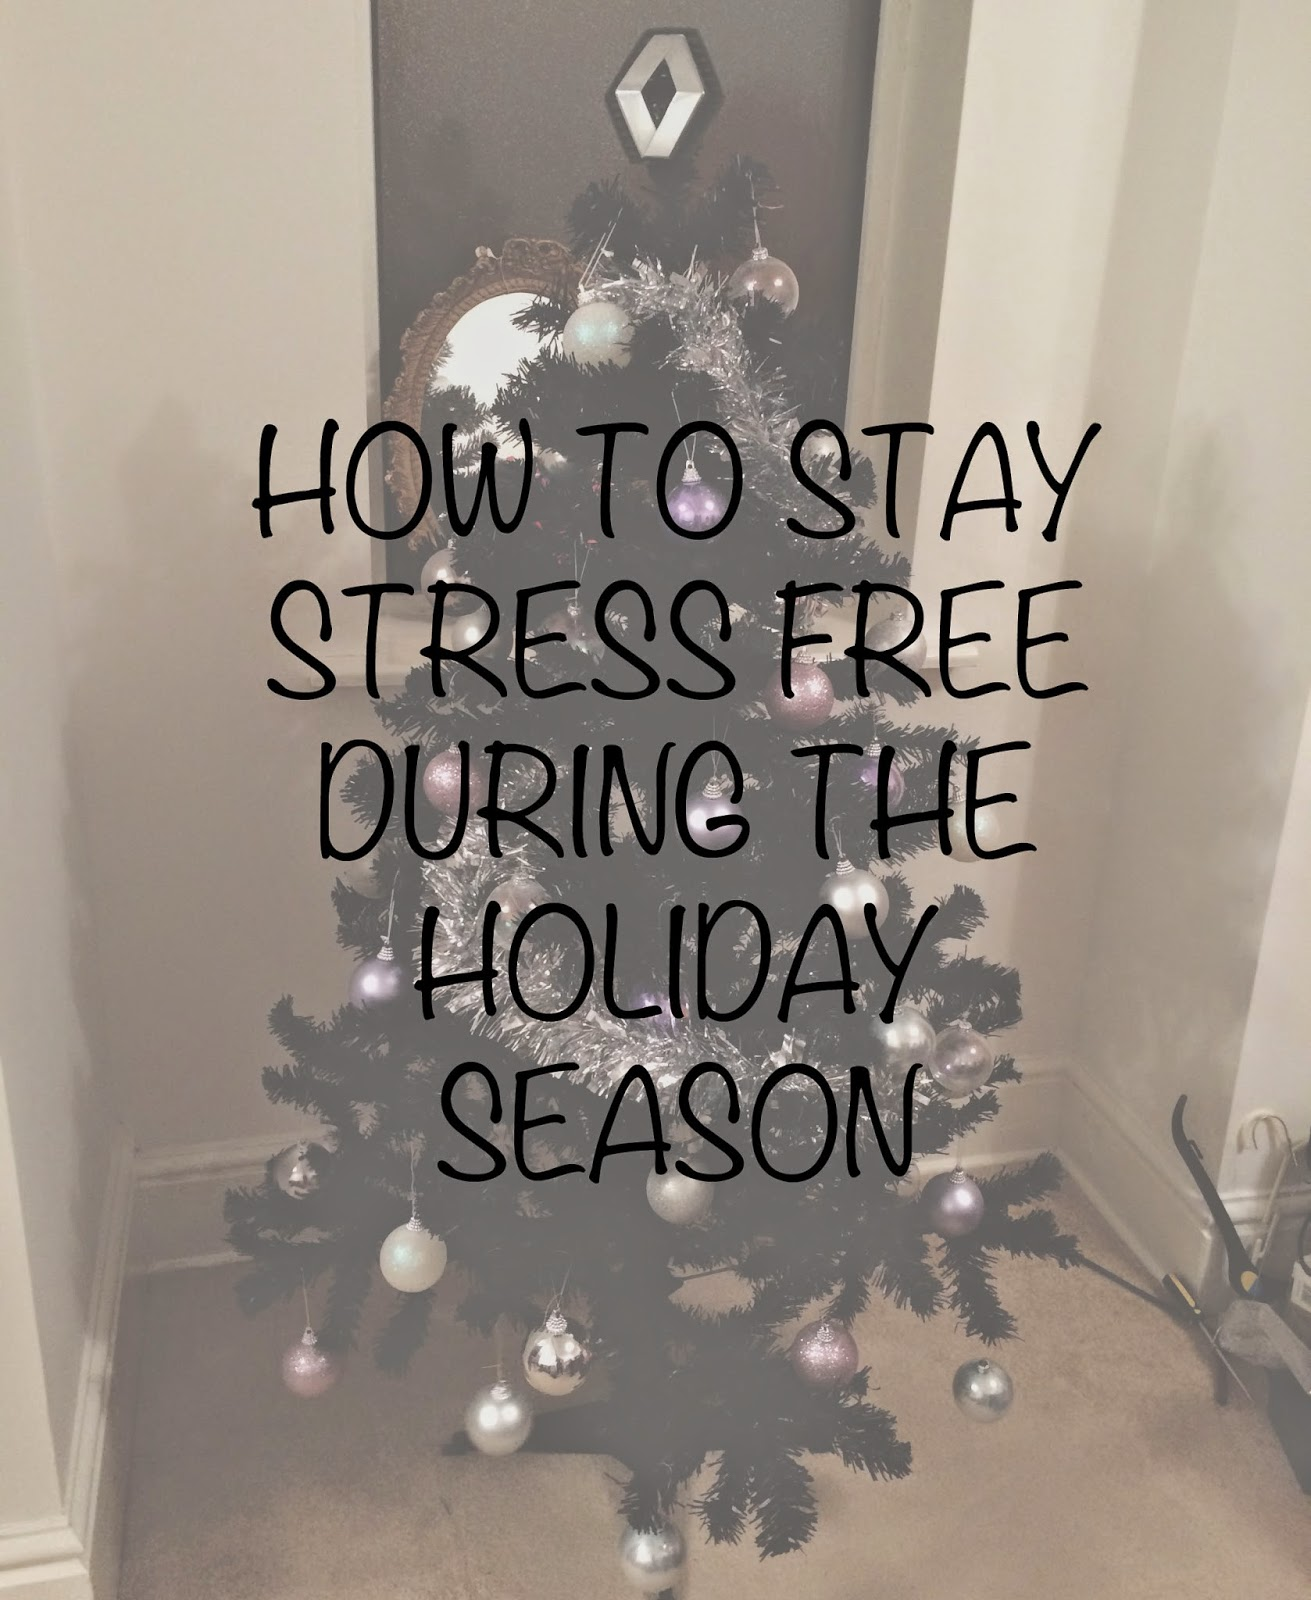 How To Stay Stress Free During The Holiday Season